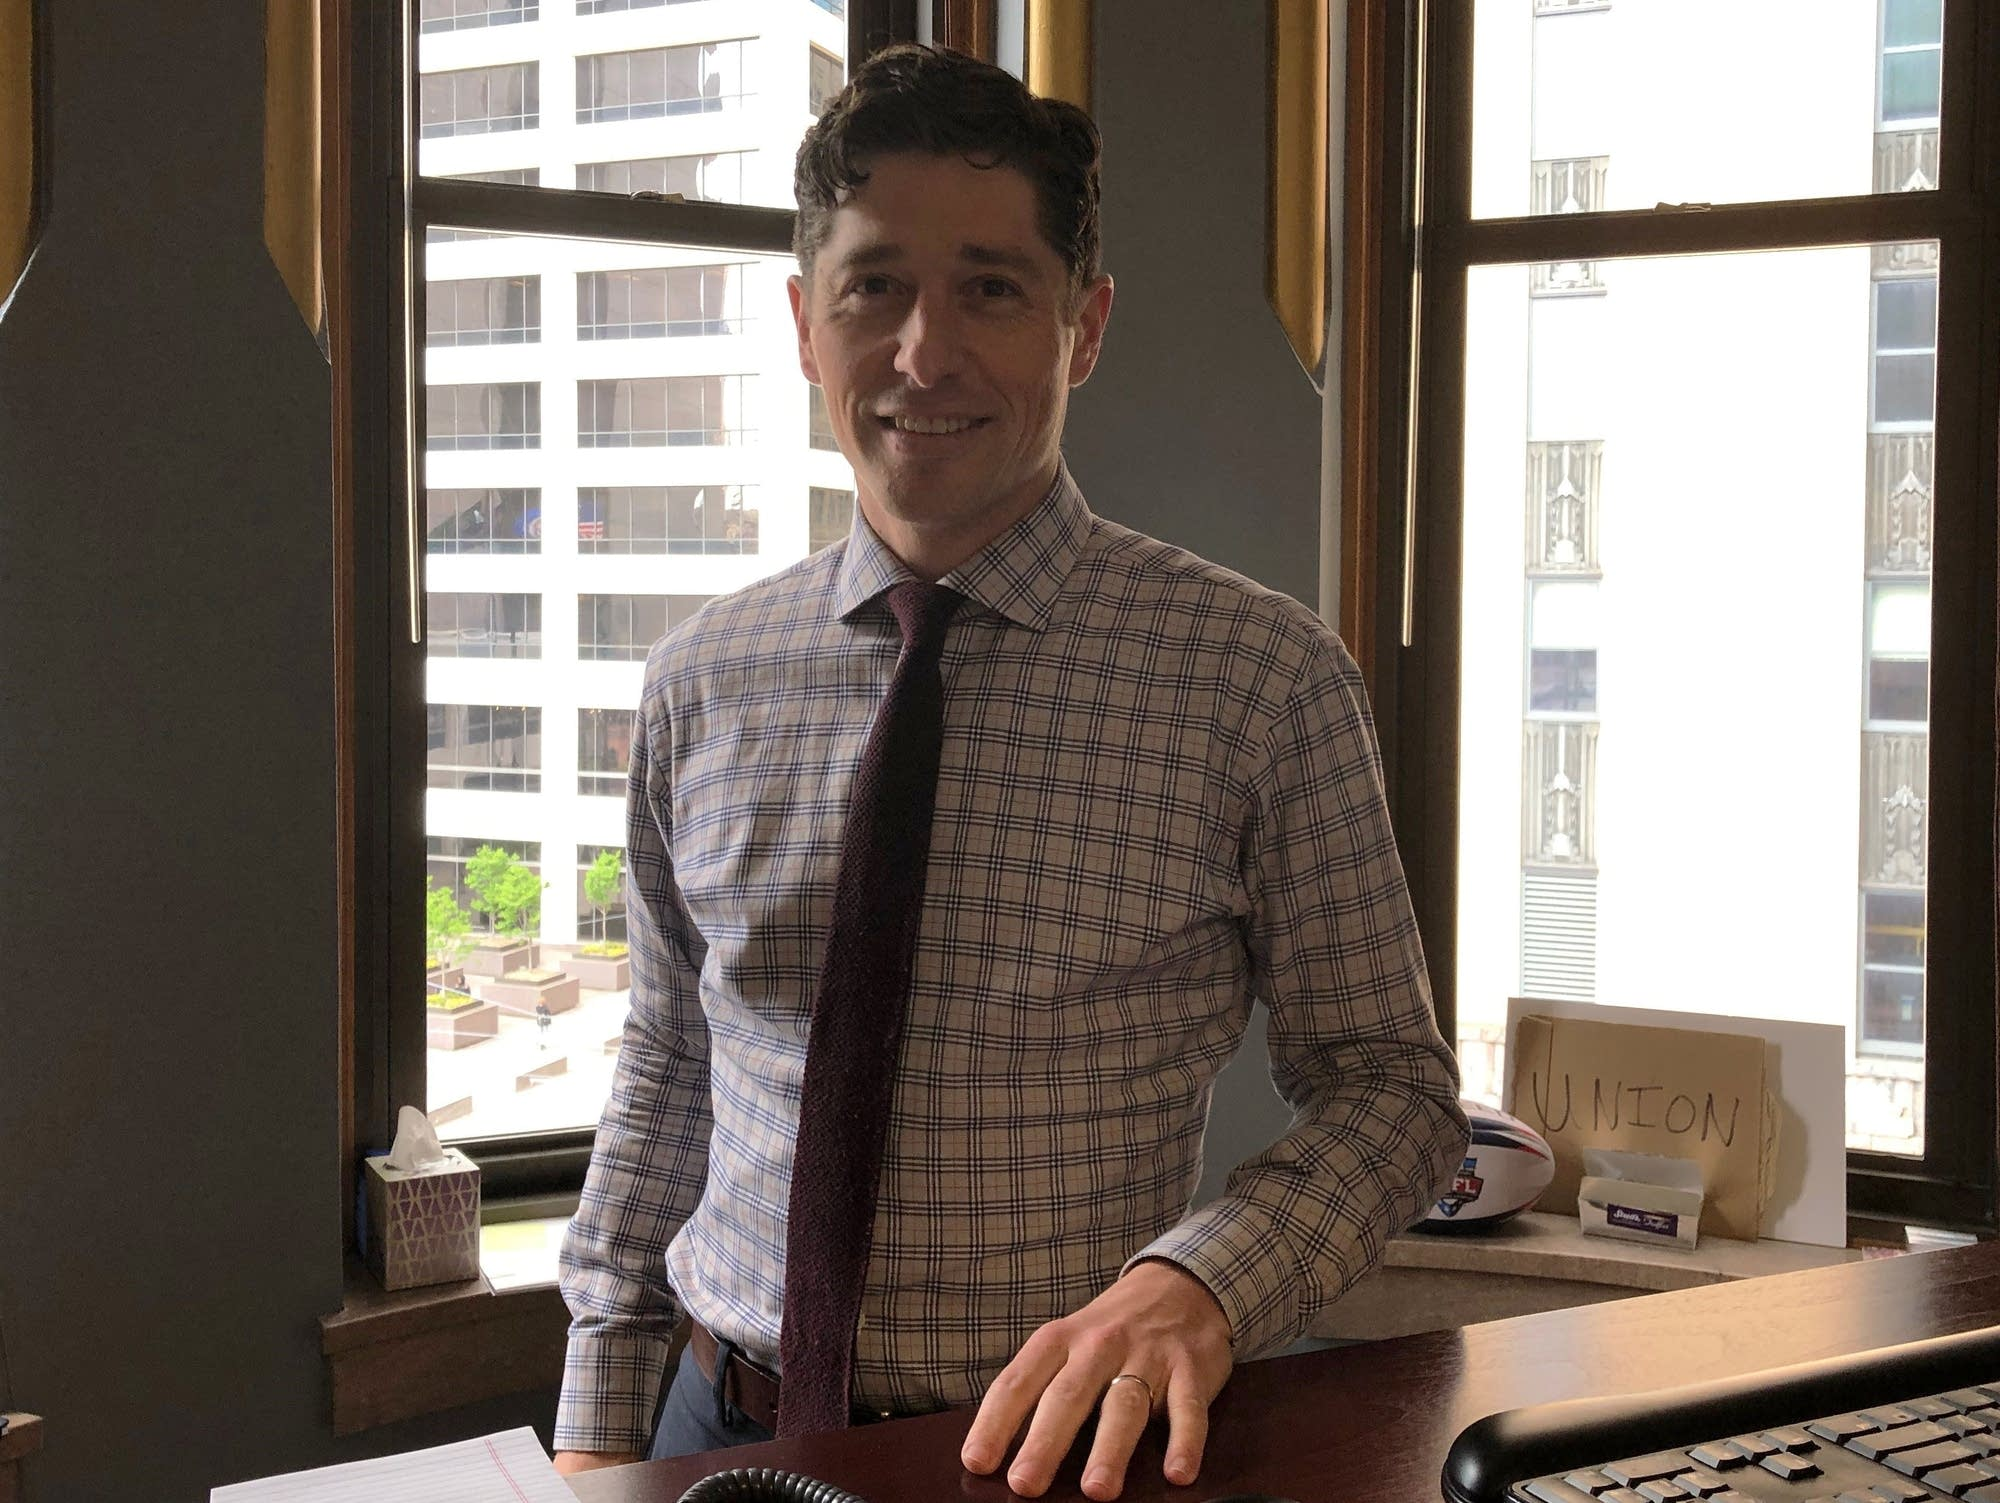 Minneapolis Mayor Jacob Frey in the City Hall office.